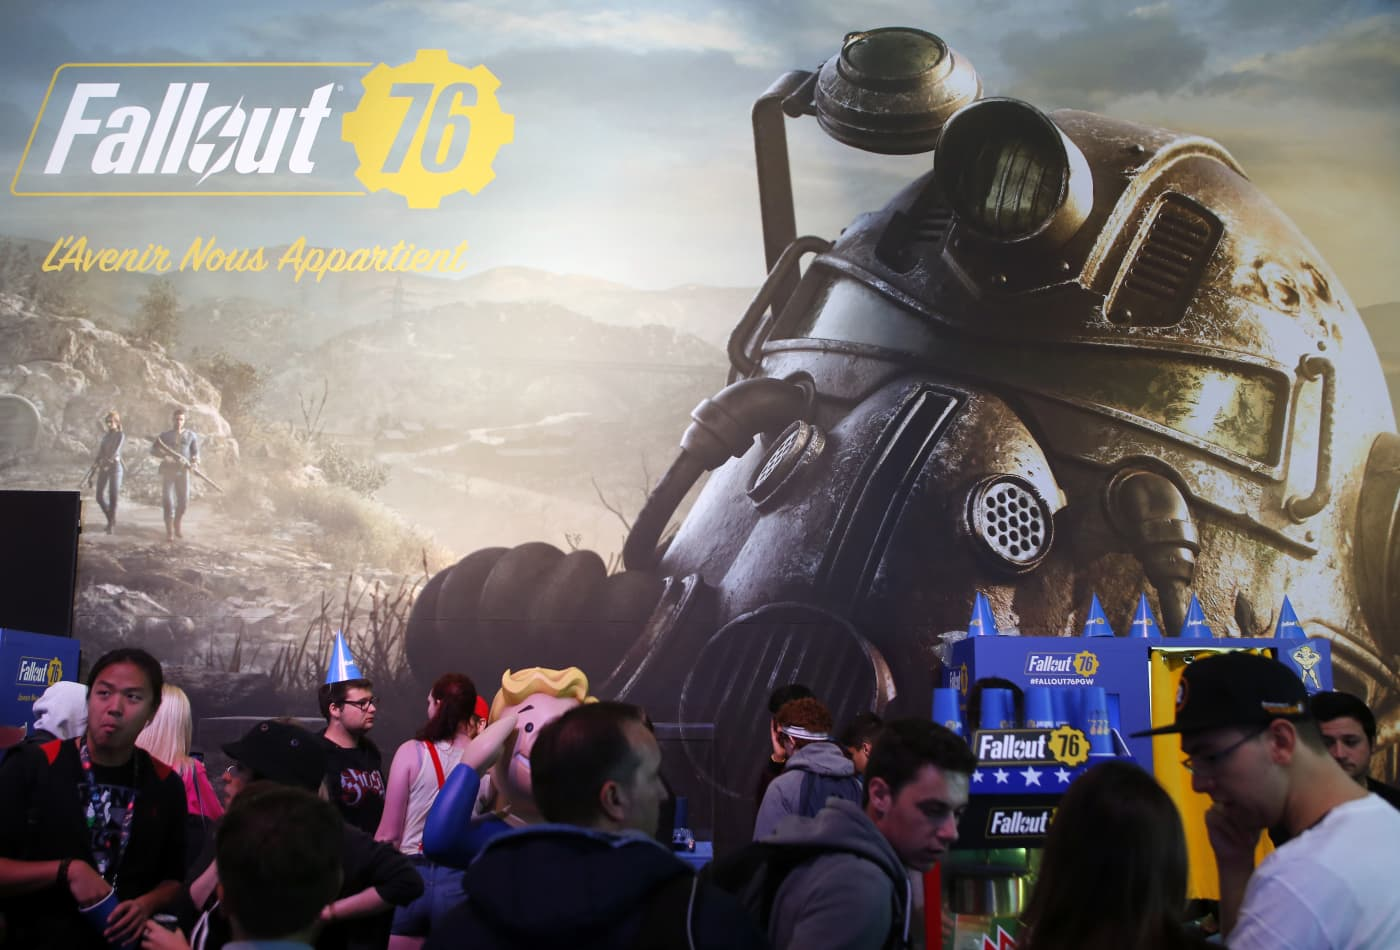 Microsoft buys Bethesda, maker of hit Fallout and The Elder Scrolls games, in $7.5 billion deal